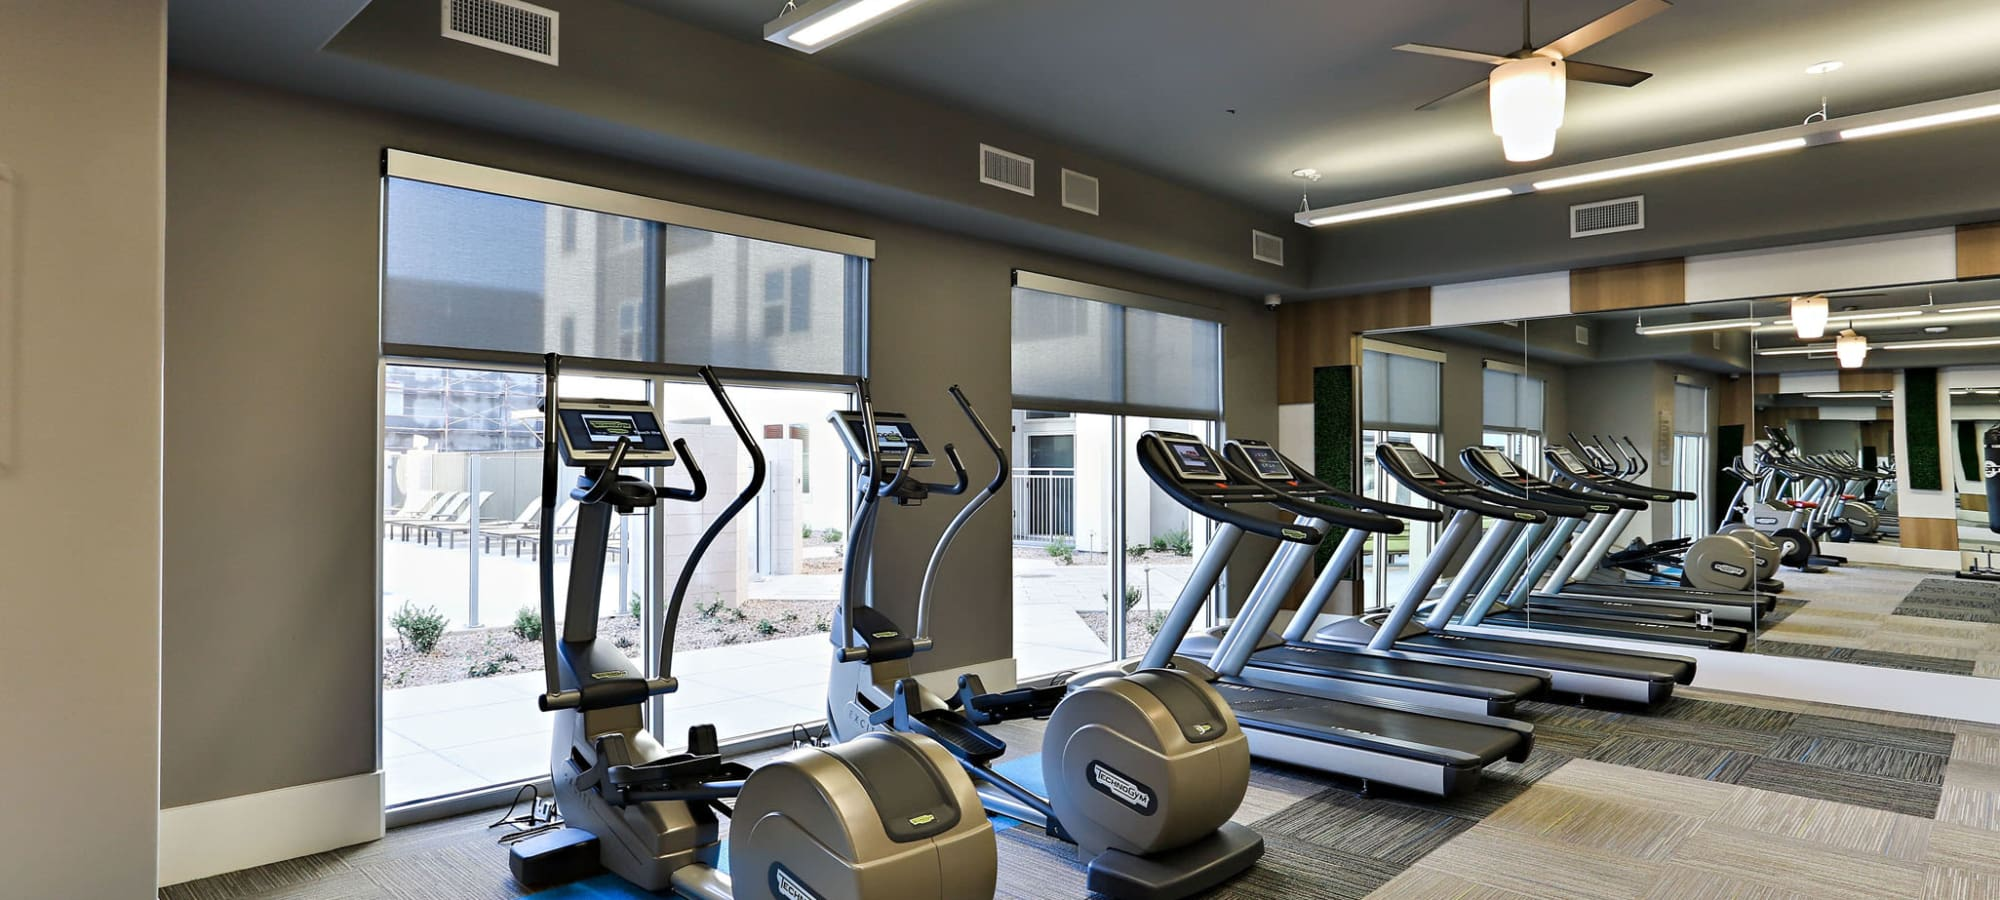 Well-equipped fitness center at The Hyve in Tempe, Arizona